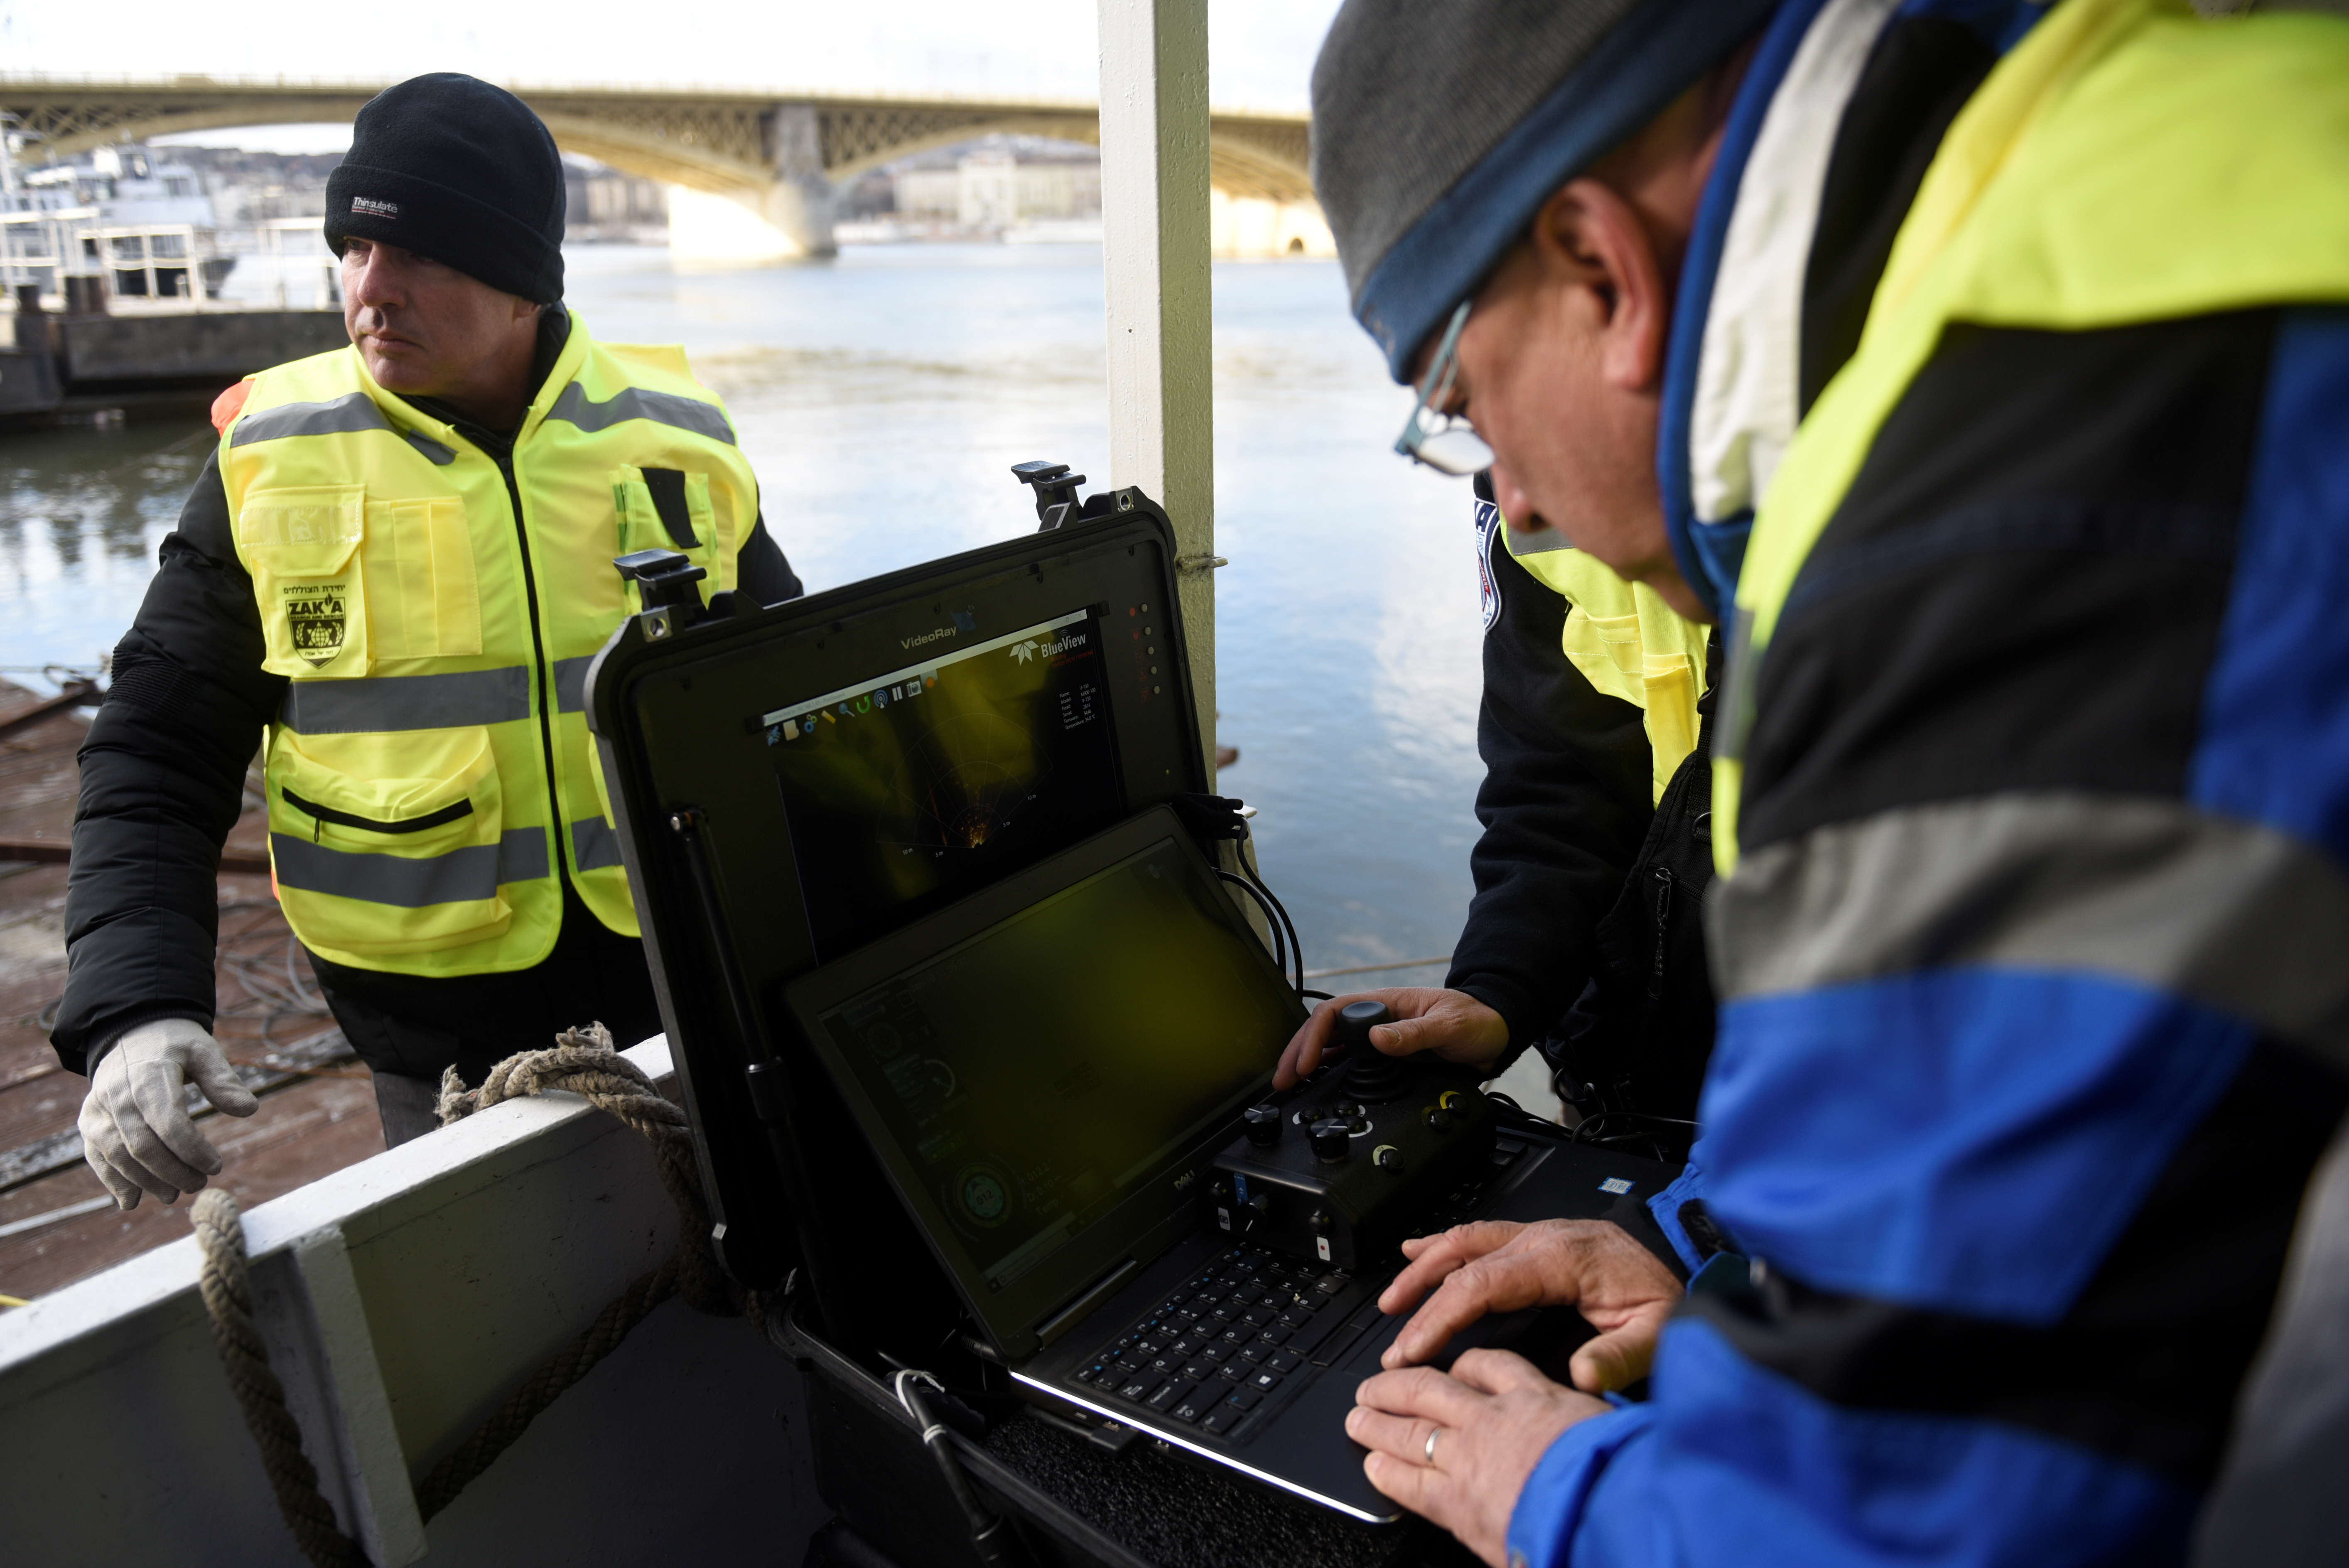 Volunteers of Israeli rescue and recovery organisation ZAKA survey images transmitted by an underwater sonar during a search for the remains of Holocaust victims murdered on the banks of the Danube river in 1944 in Budapest, Hungary January 15, 2019. REUTERS/Tamas Kaszas